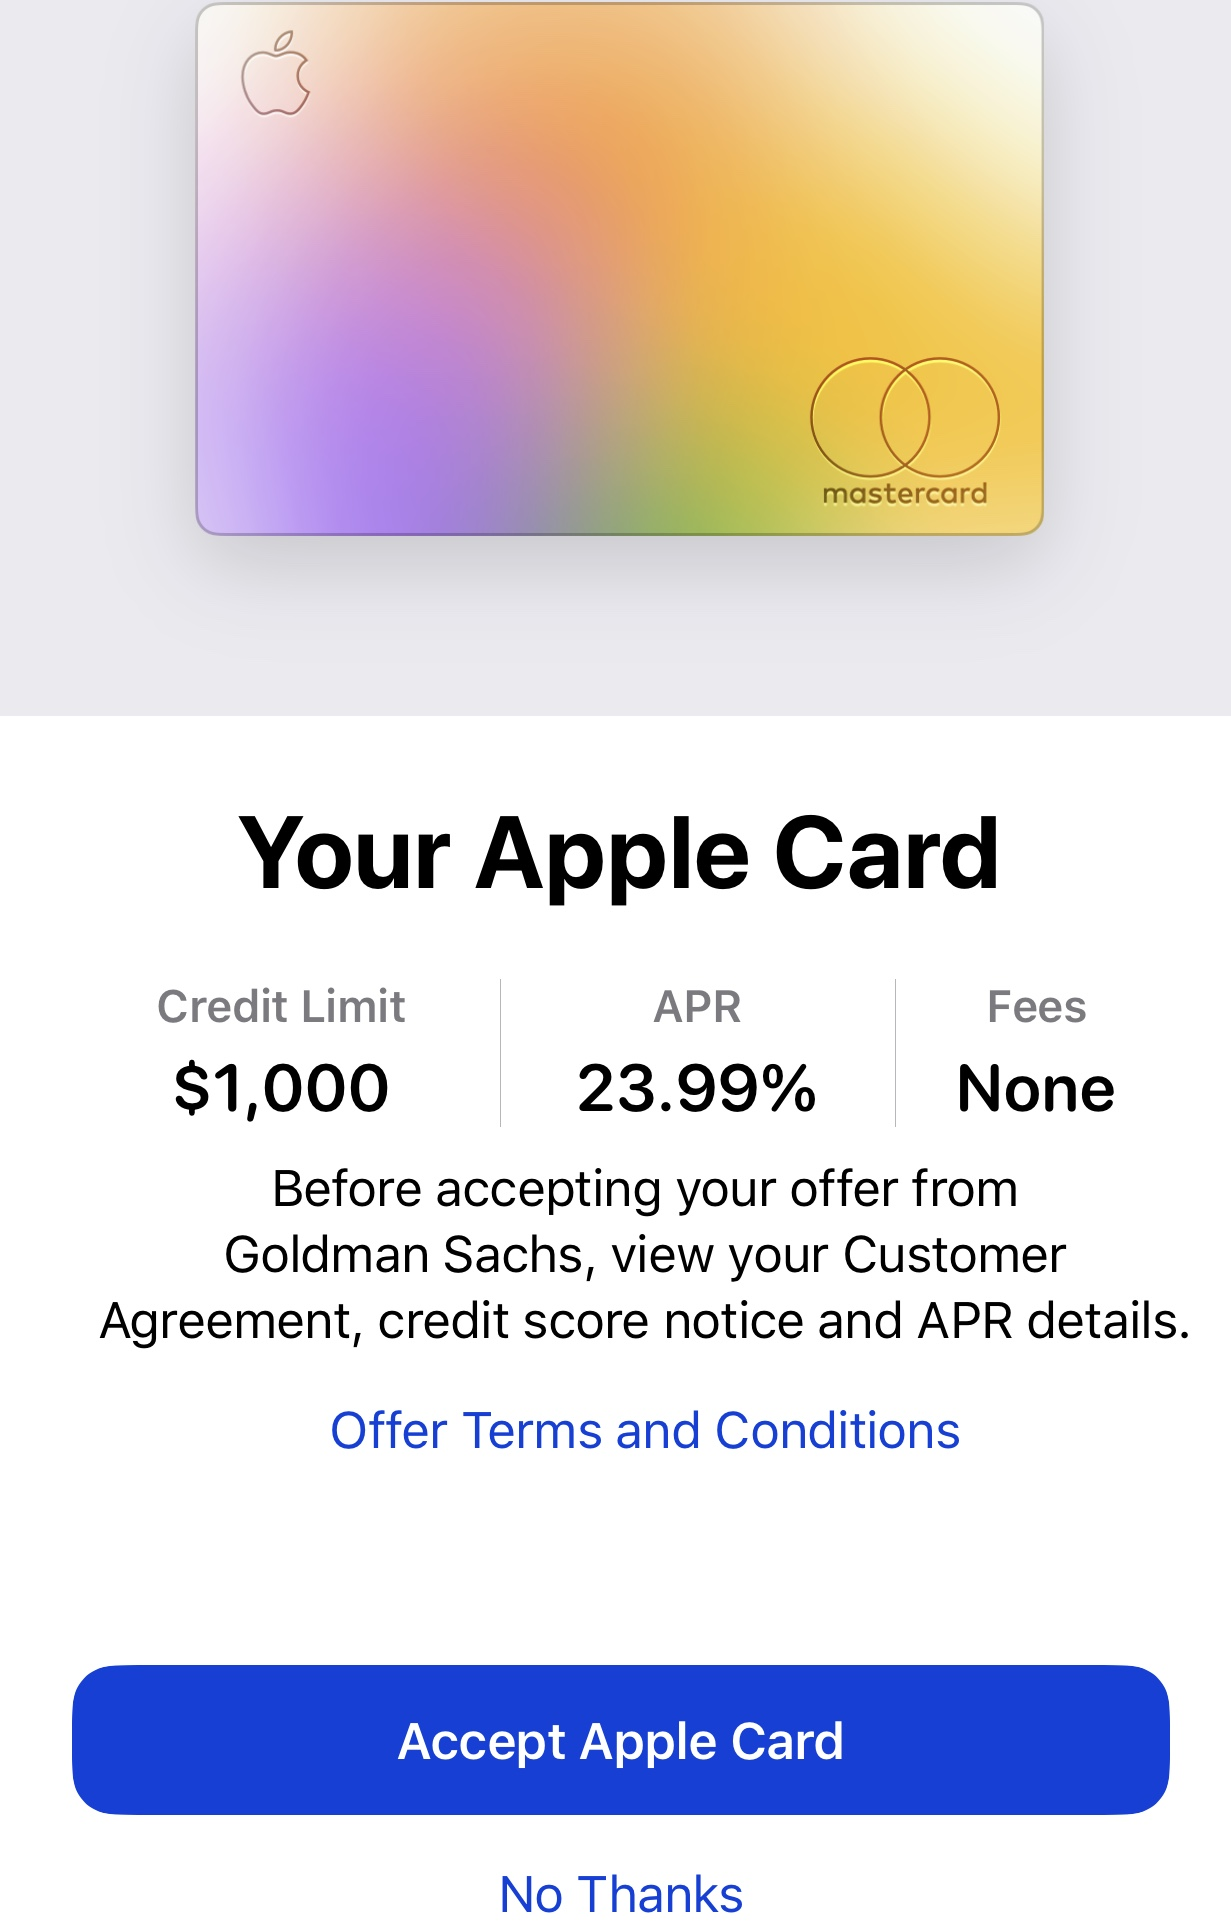 Apple Card APR changed from 13.13% to 13.13% in al - myFICO